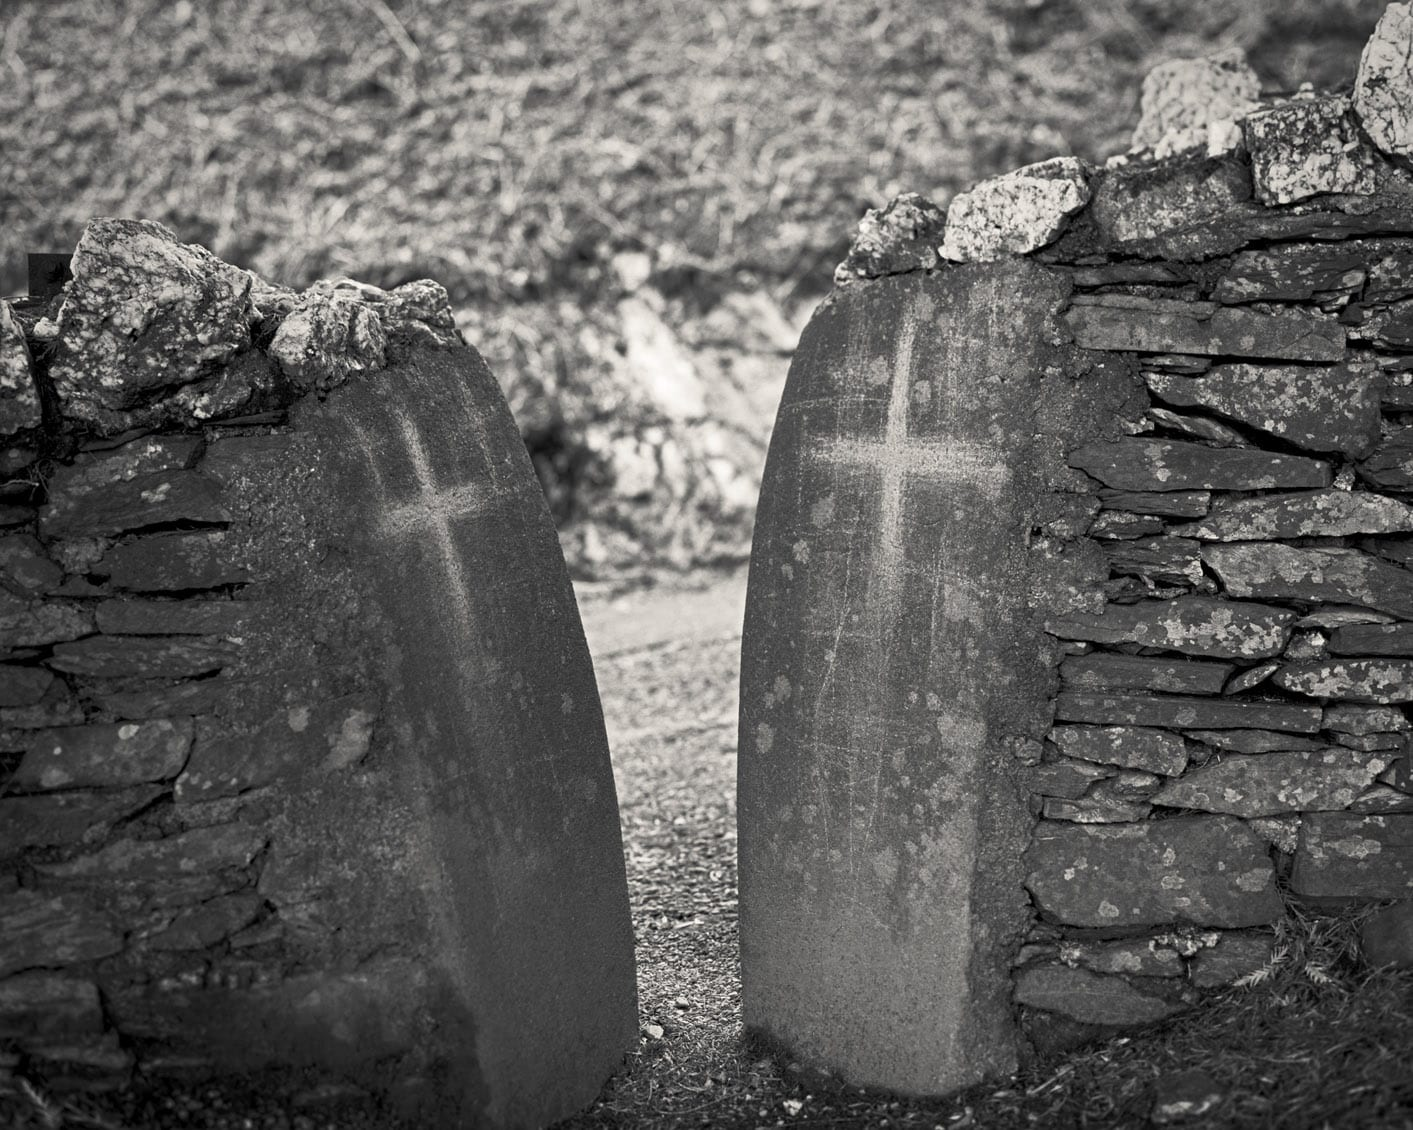 Untitled 43-Ex Voto-Alys Tomlinson-black and white photography-ex voto crosses carved into rocks